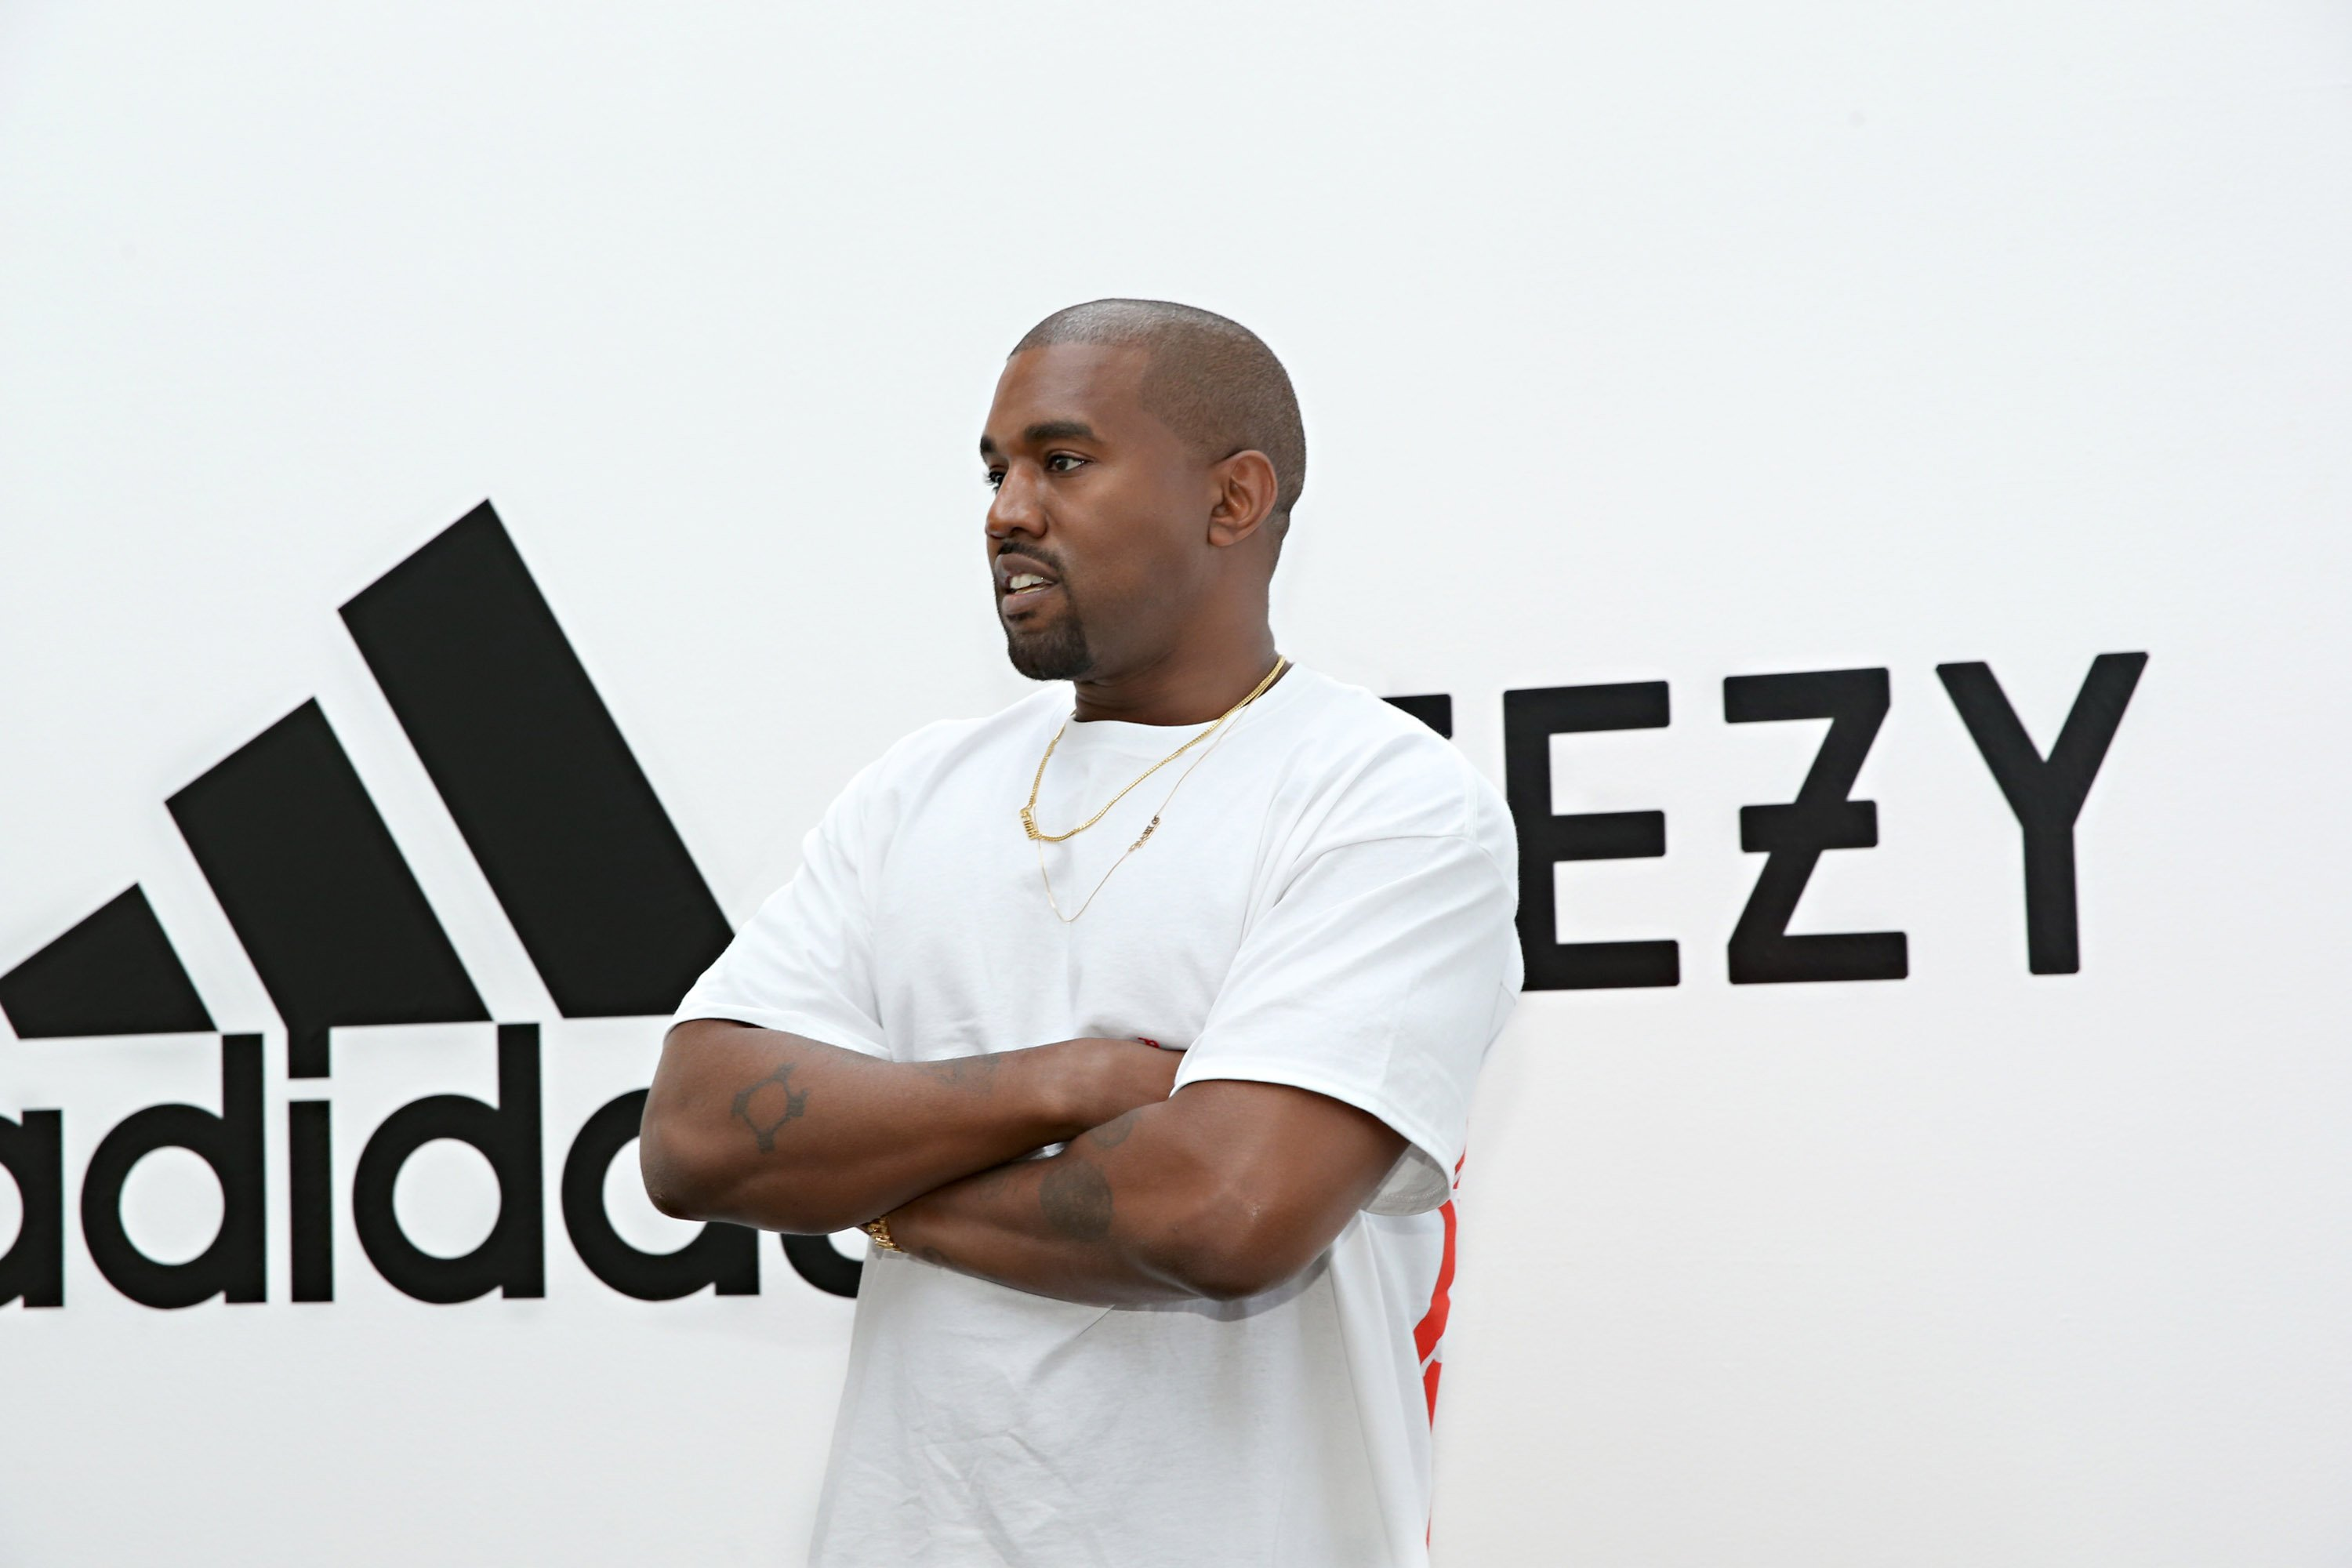 adidas Yeezy Countdown Clock August 2019